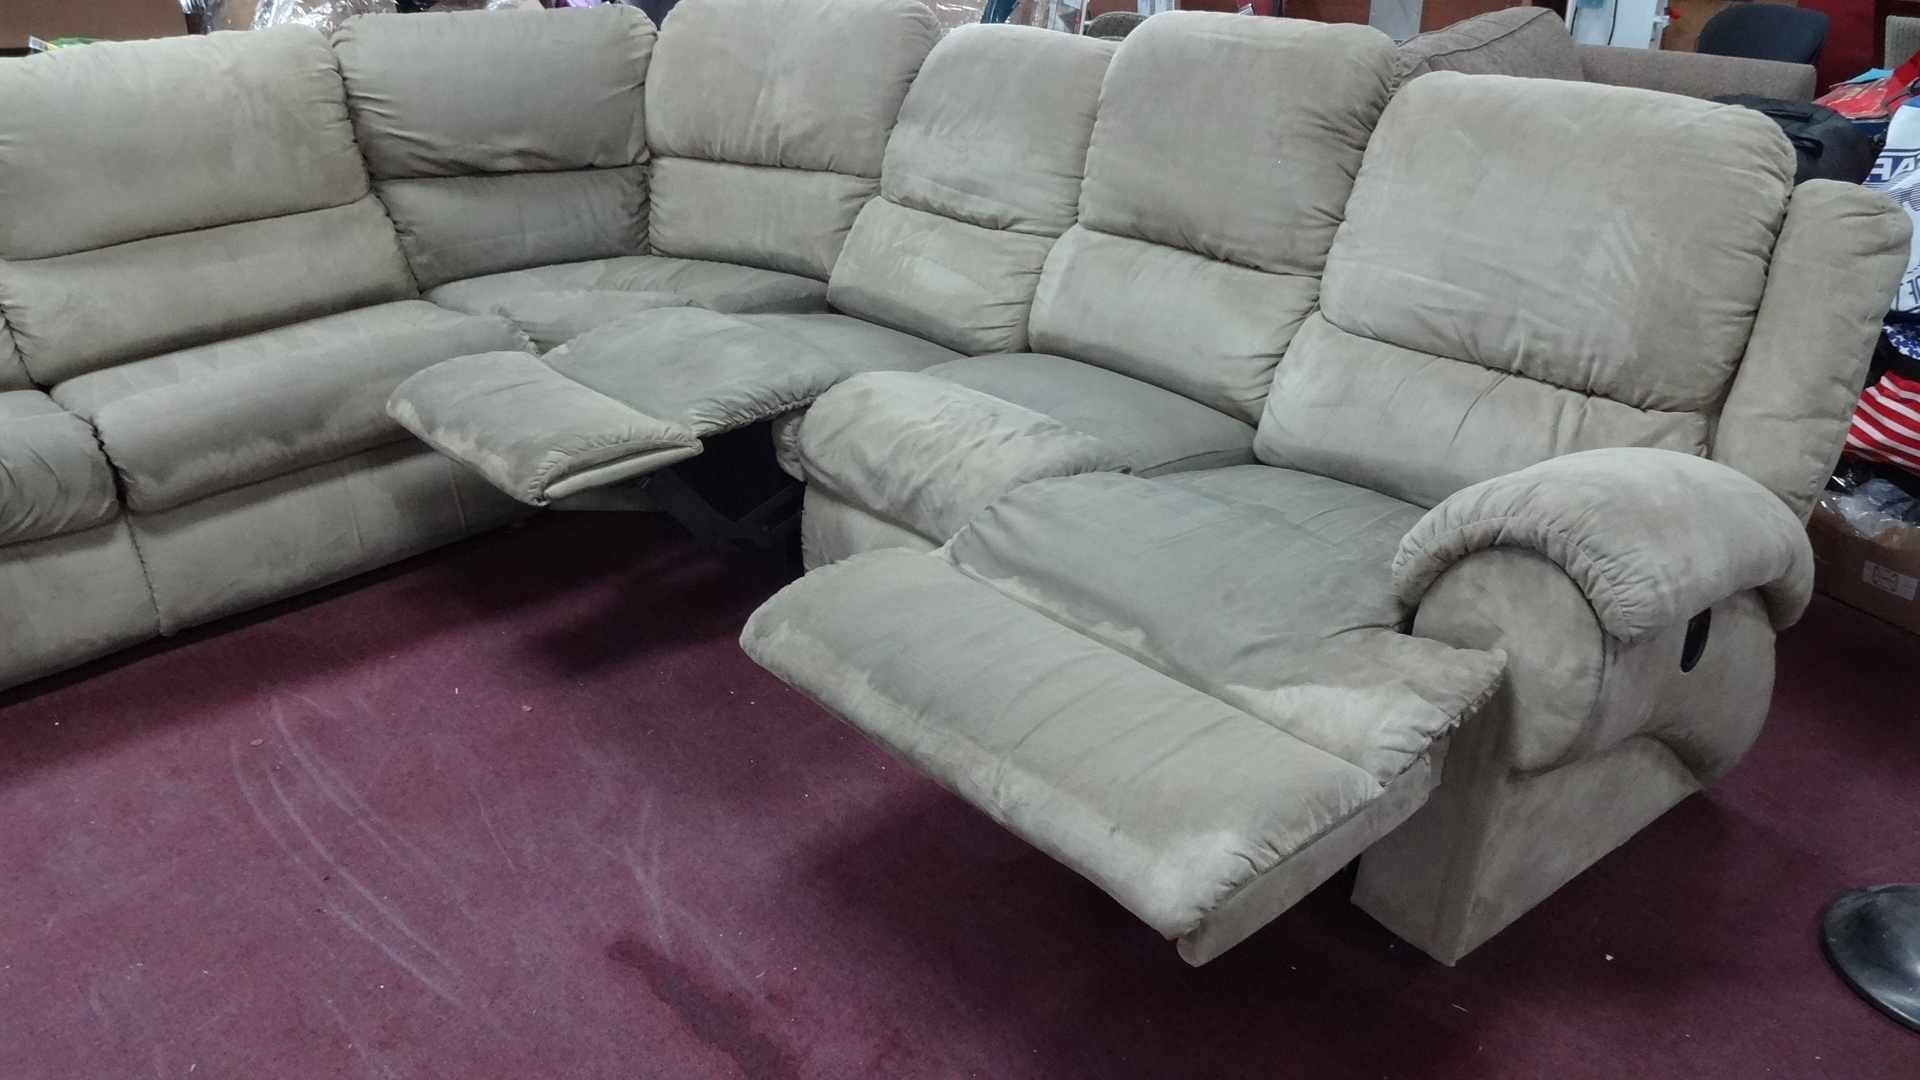 Well Known Sectional Sofas At The Brick Intended For La Z Boy Sectional Sofa Bed • Sofa Bed (View 5 of 15)